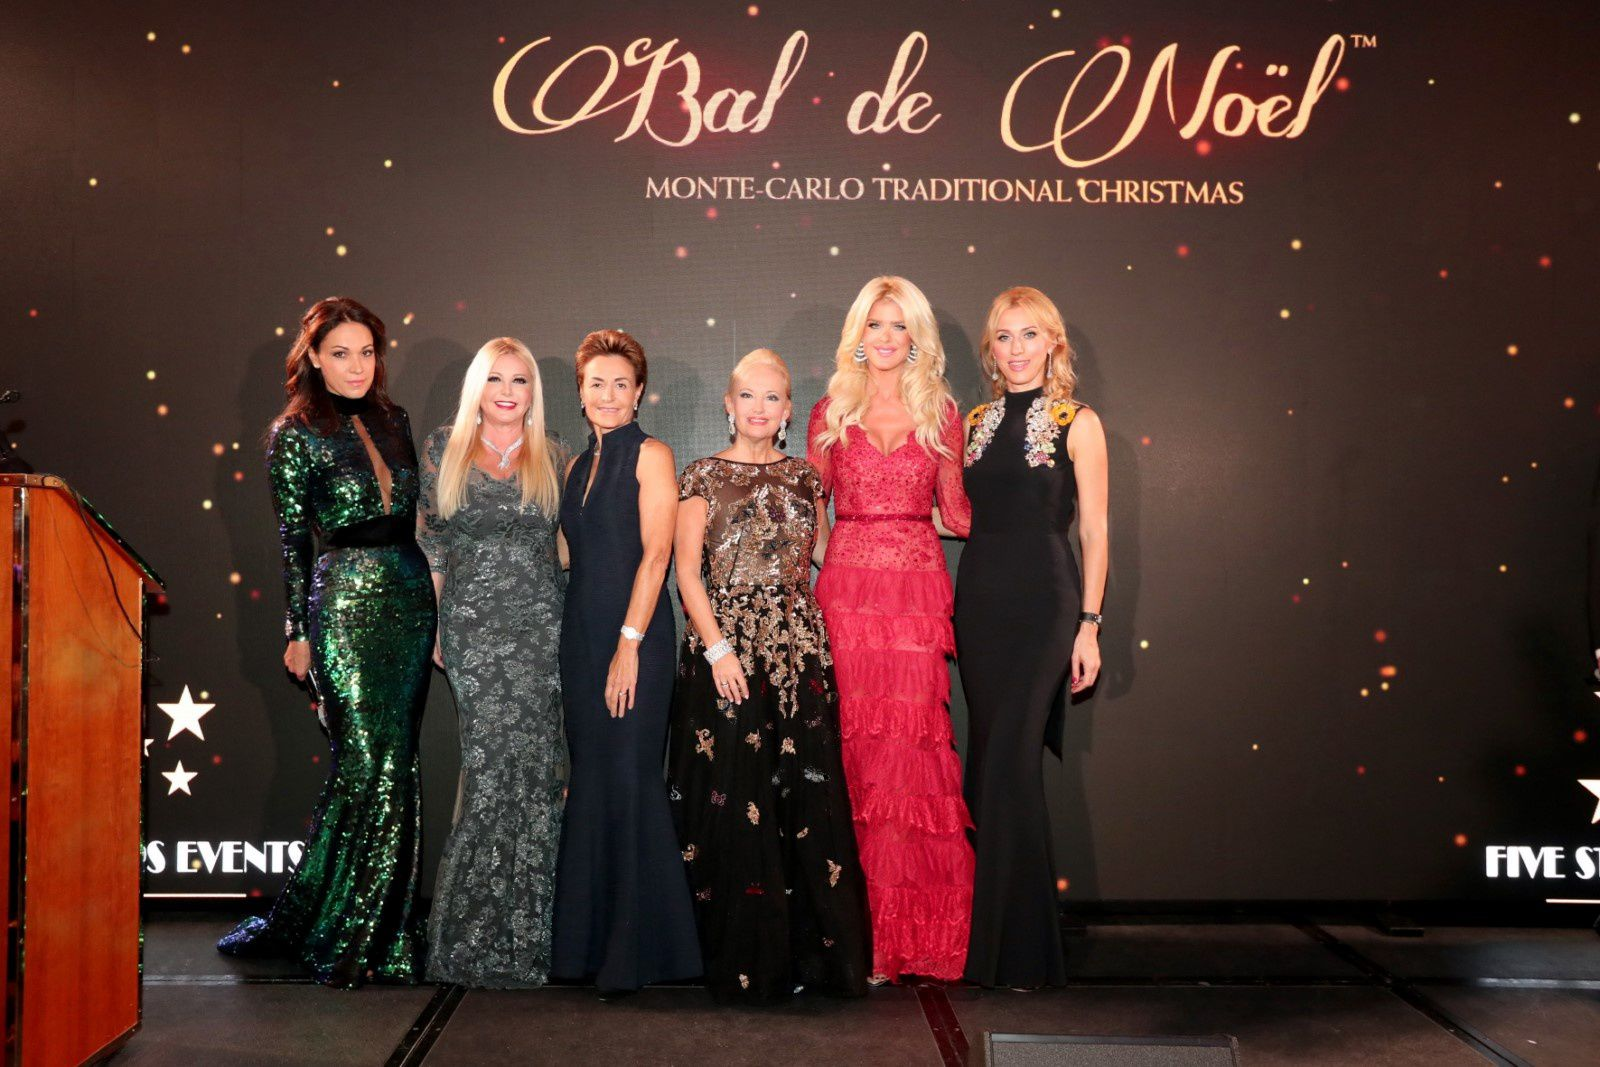 MONACO 15TH EDITION OF THE BAL DE NOEL